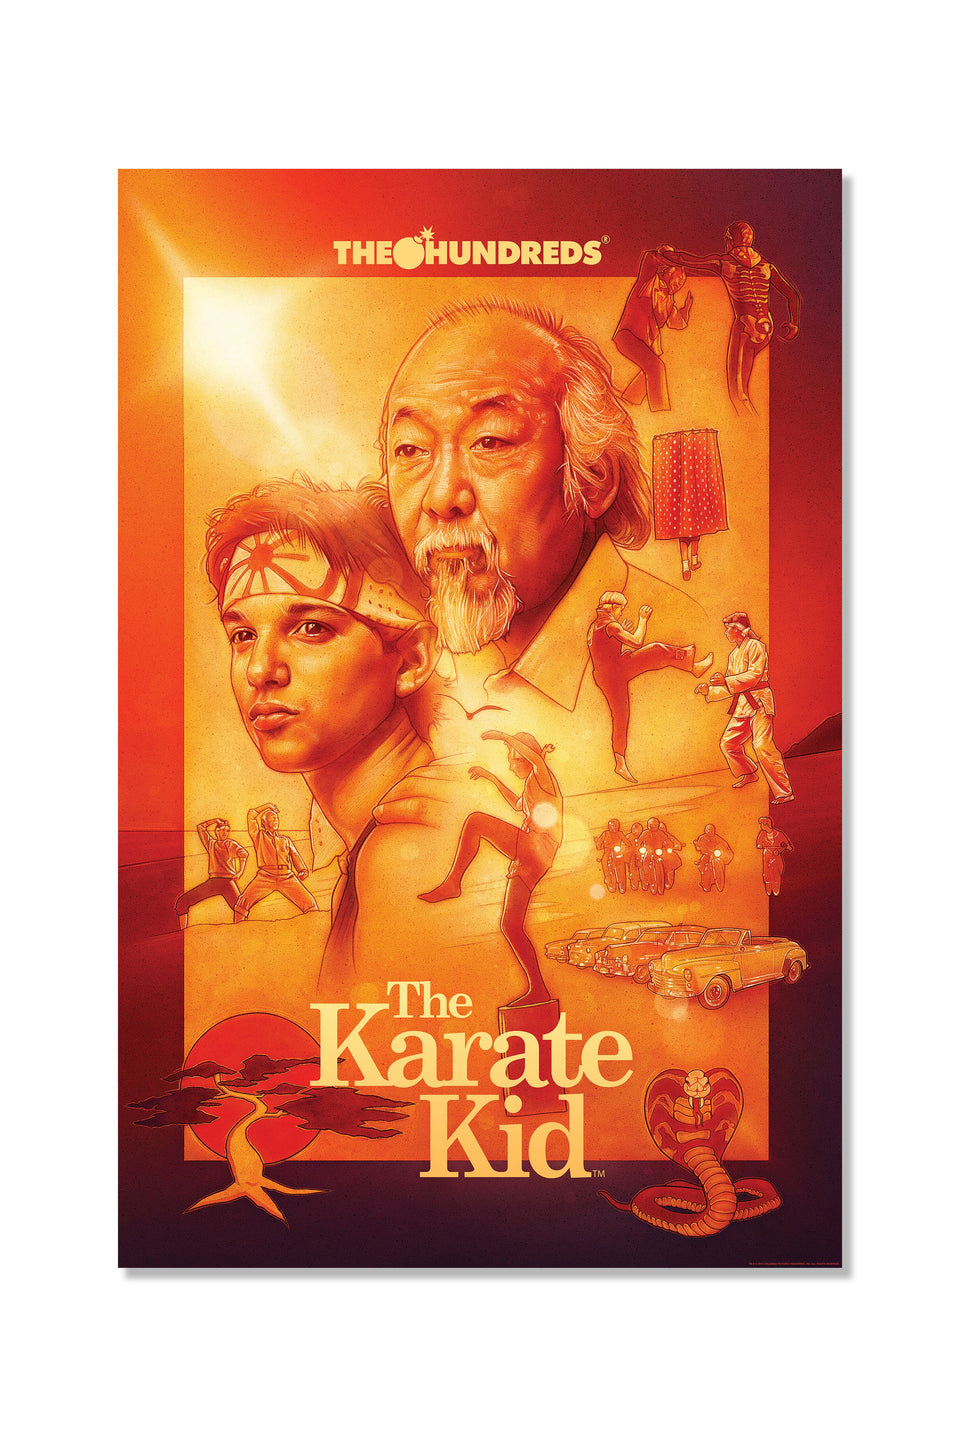 The Hundreds X The Karate Kid Poster